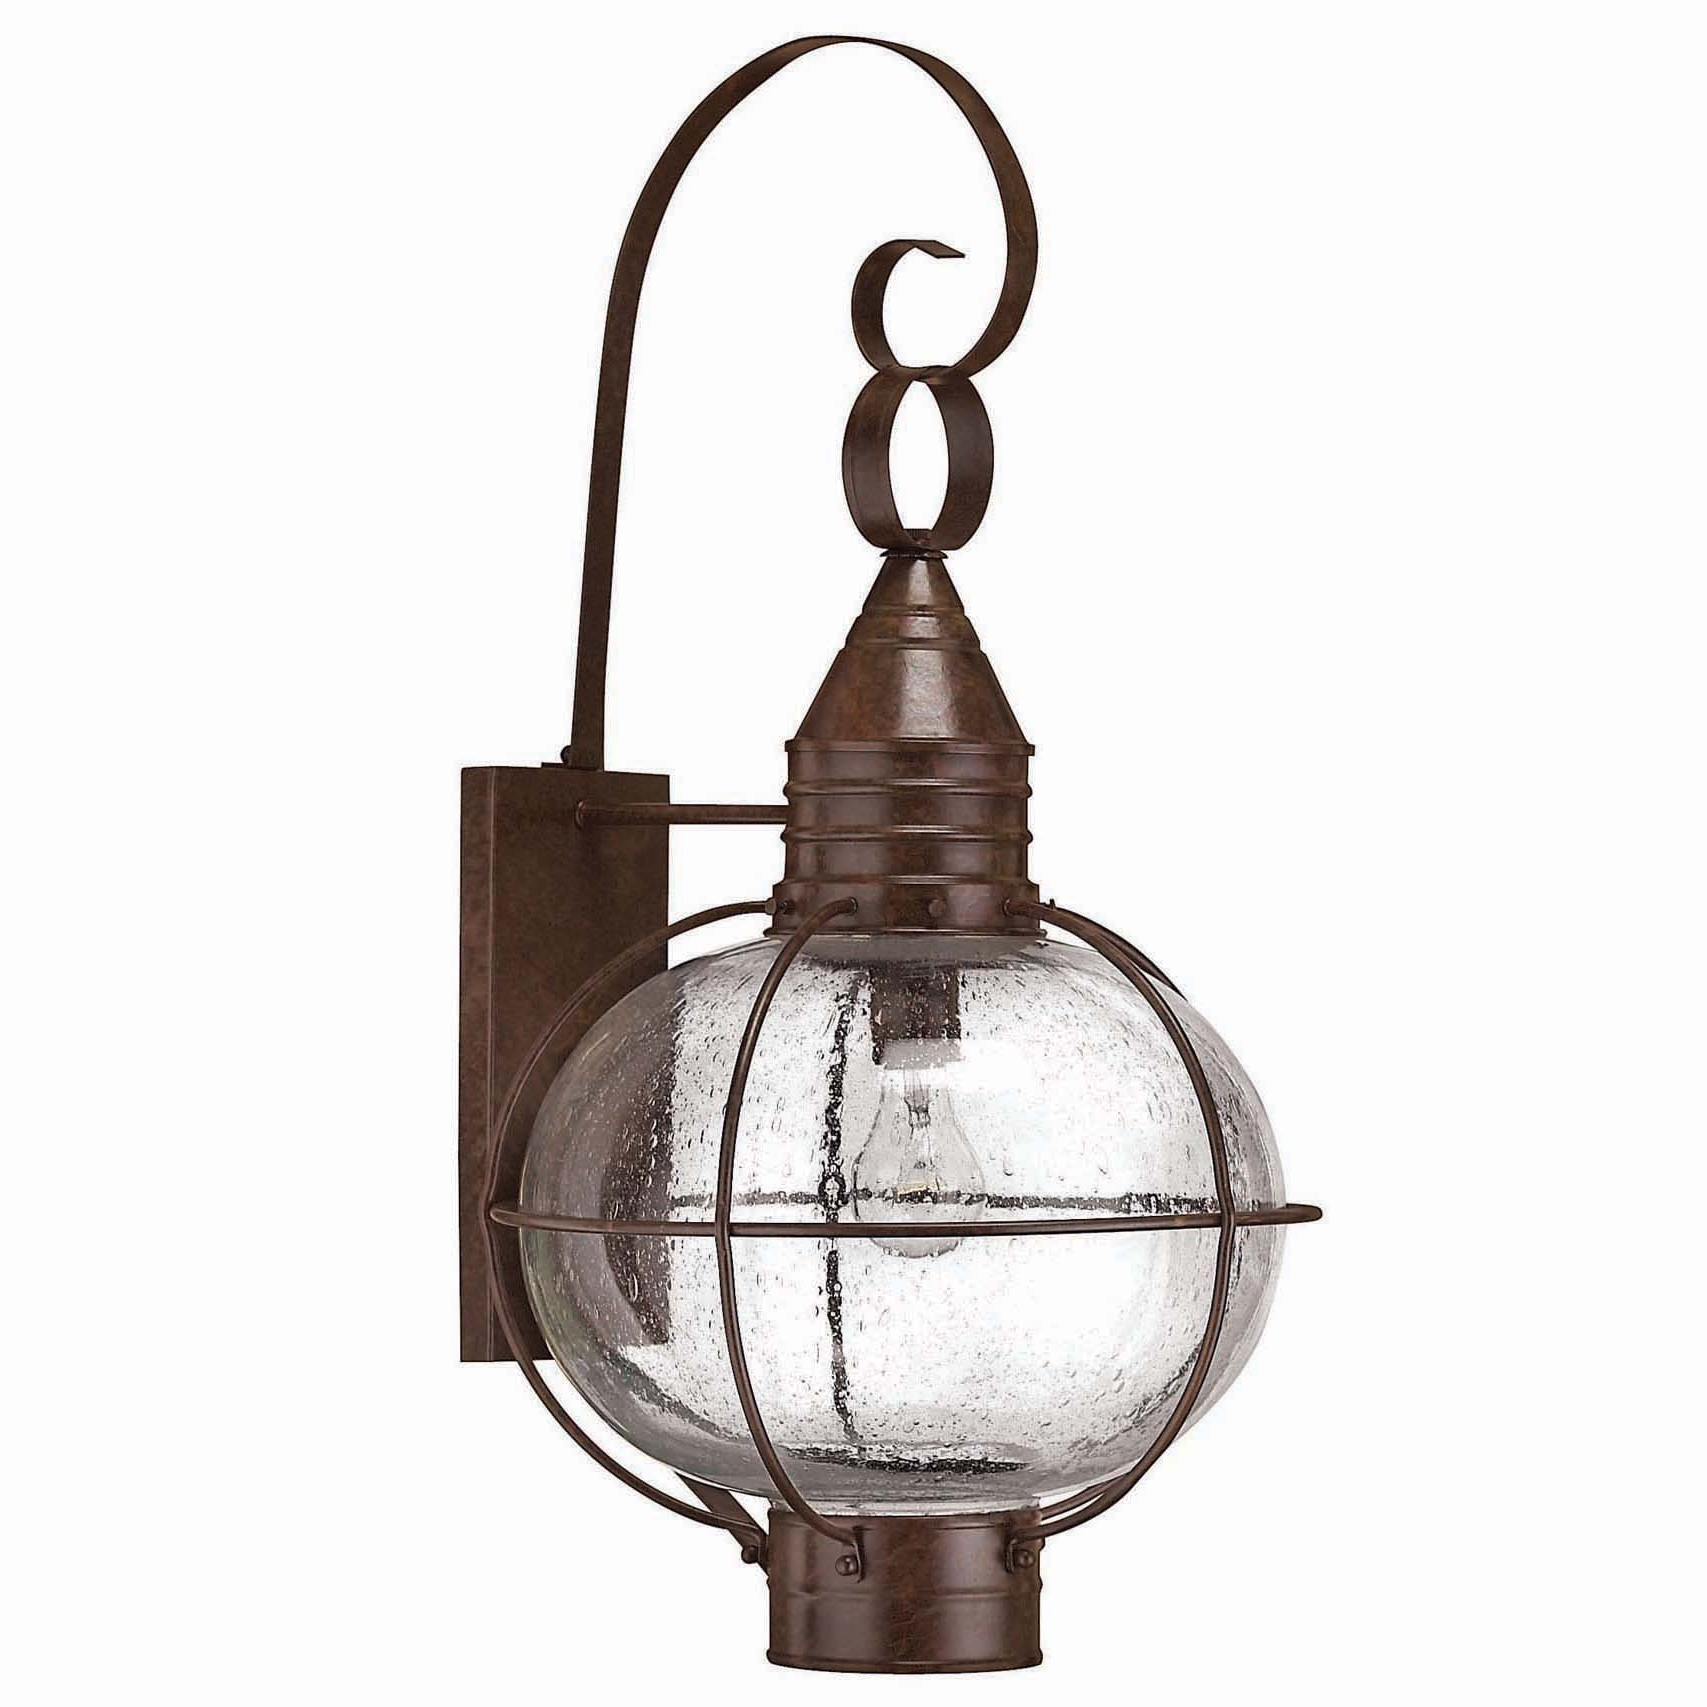 Most Recent Cape Cod Extra Large Outdoor Wall Sconcehinkley Lighting – Http With Regard To Hanging Outdoor Onion Lights (View 19 of 20)